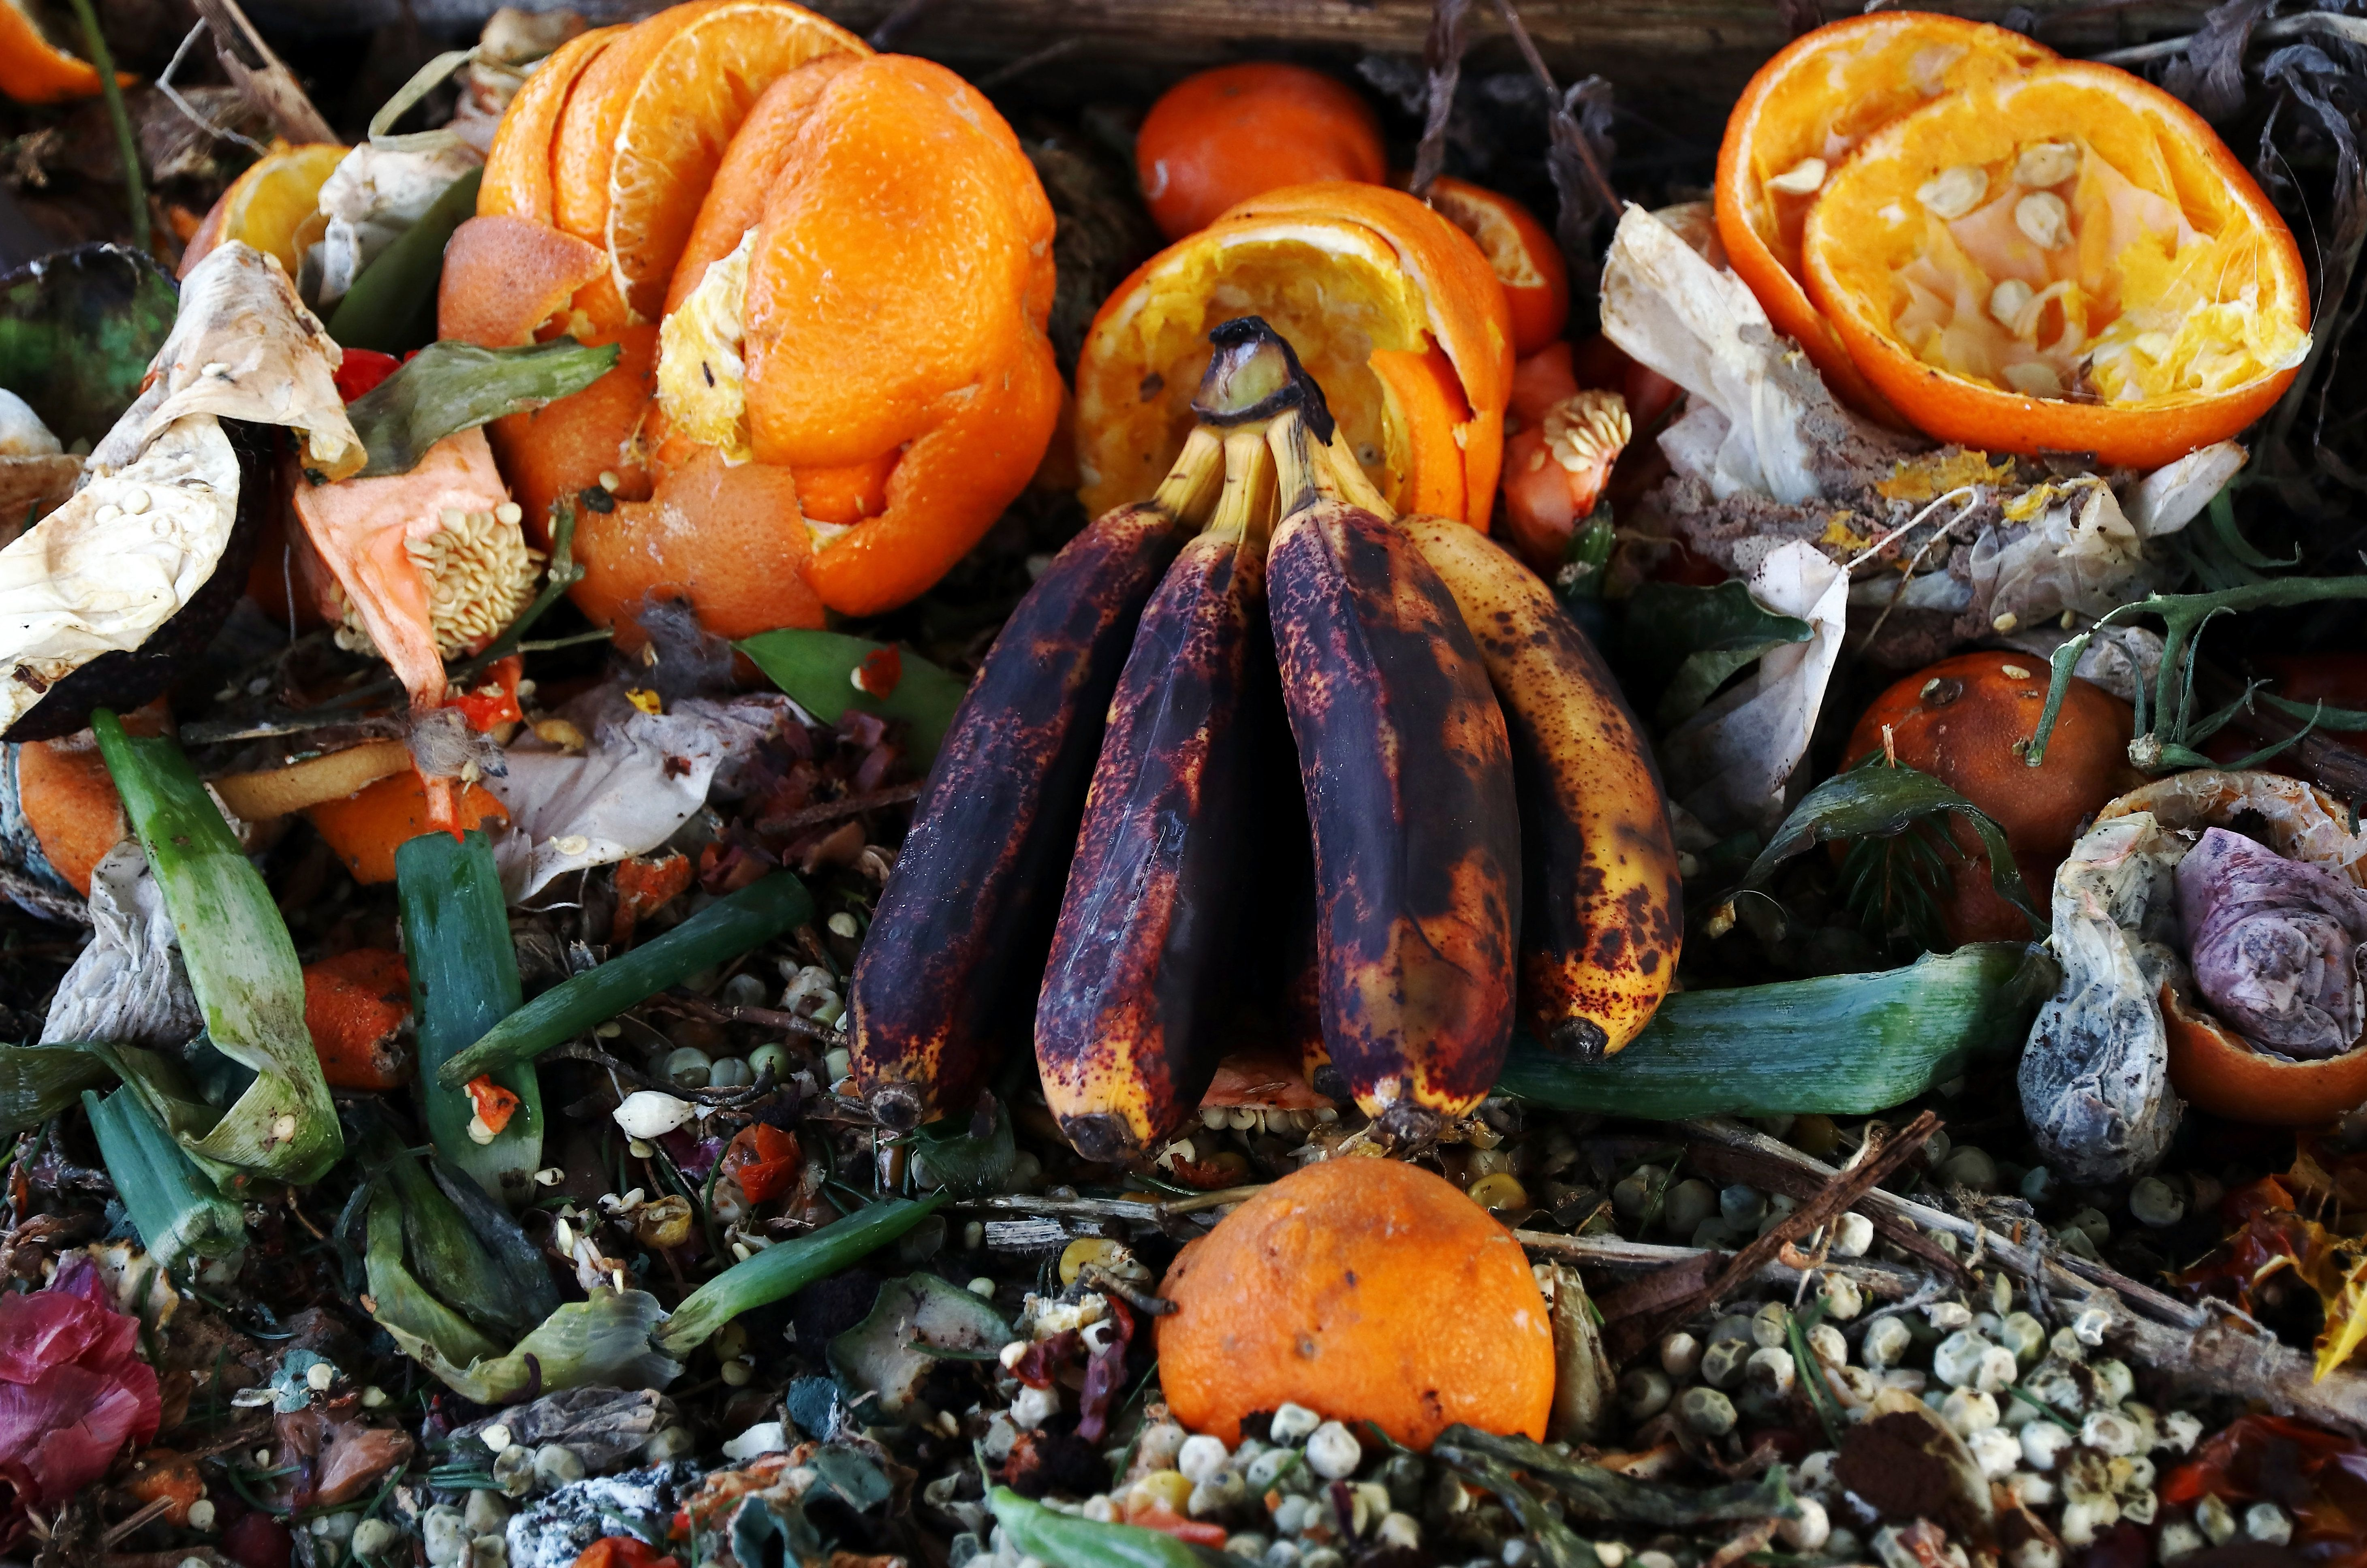 In the U.S., nearly half of all food produced is wasted.